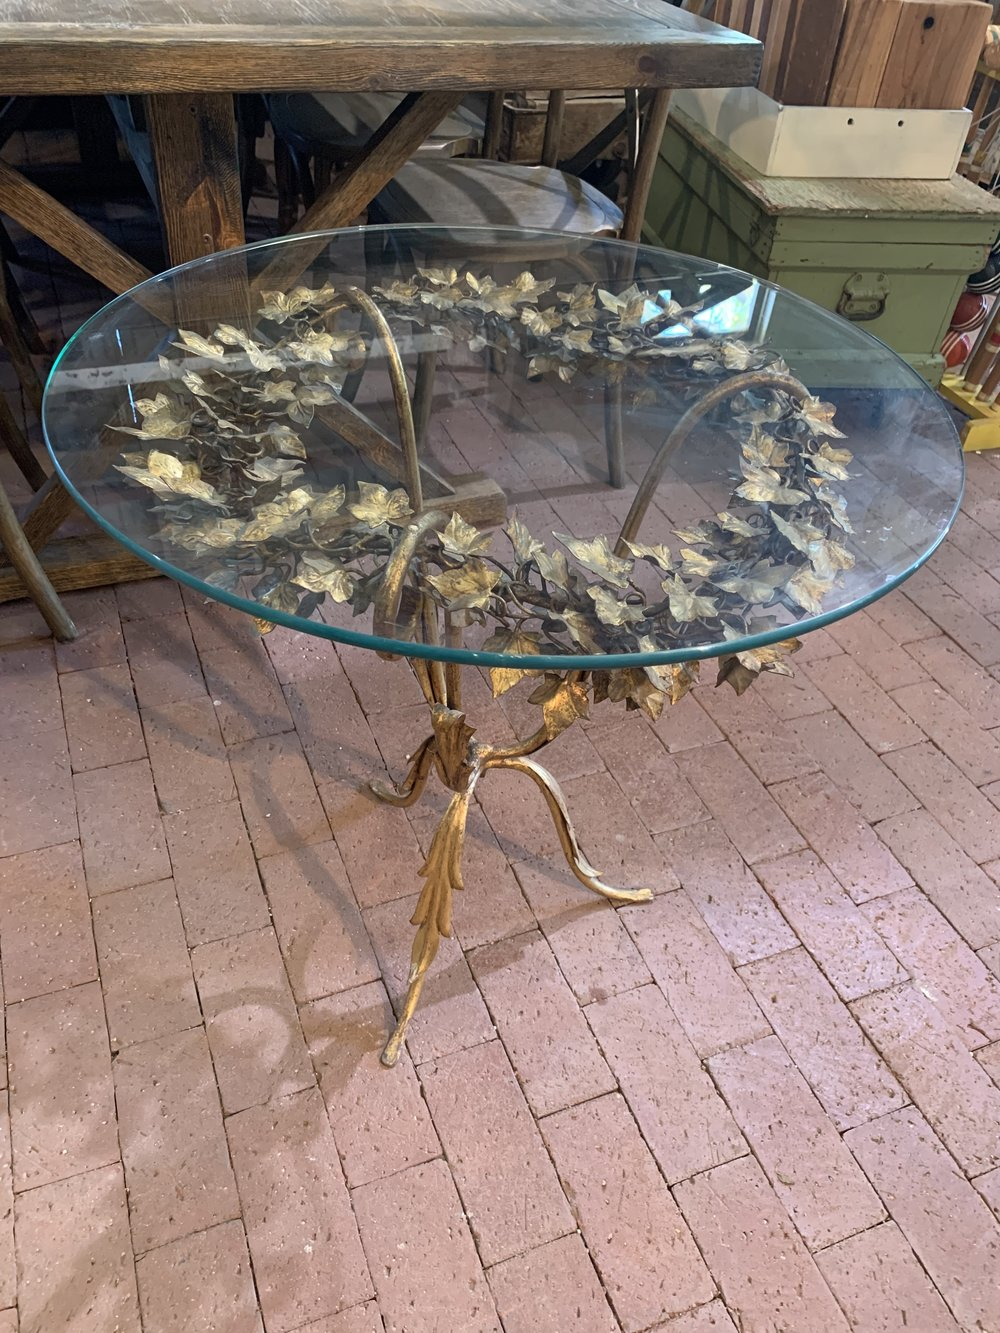 FRENCH GOLD LEAF TABLE - $75